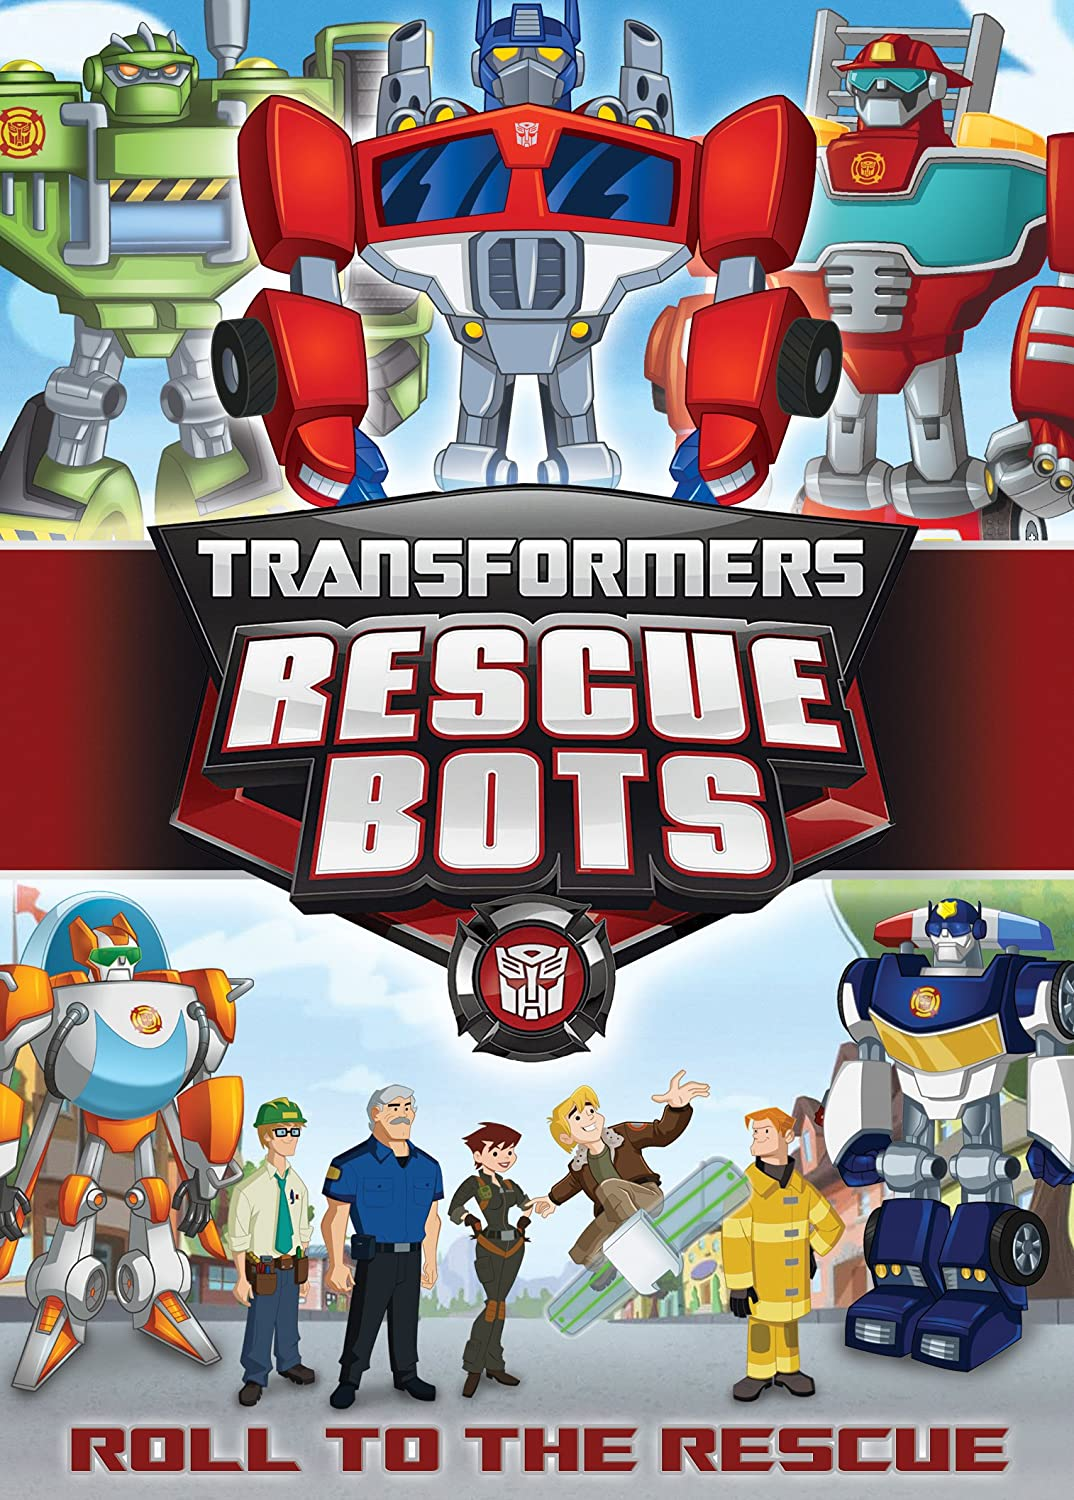 Rescue Bots House Transformers Rescue Bots Roll